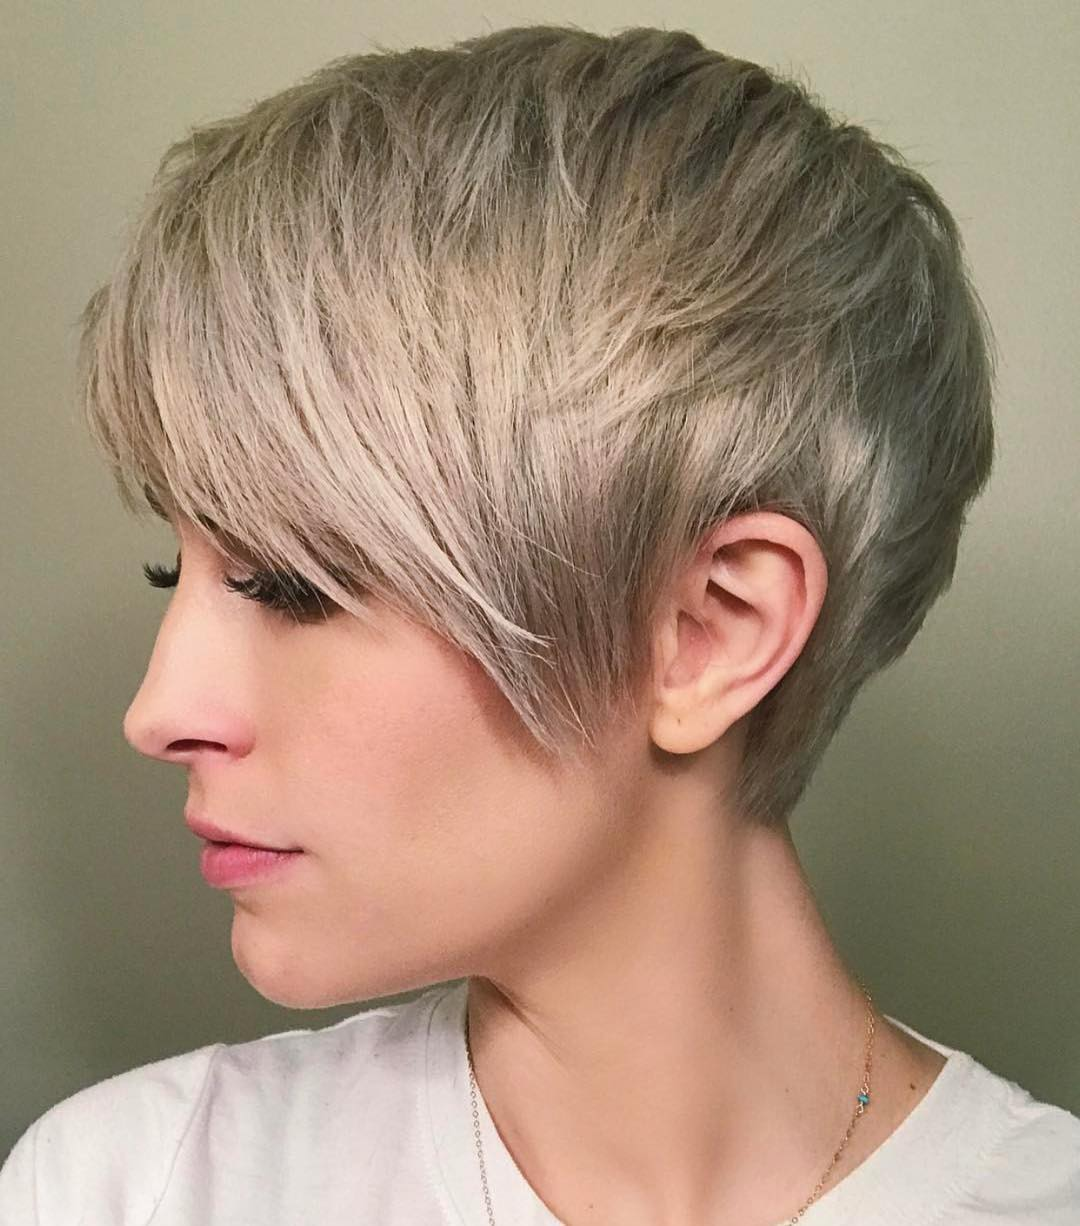 10 Best Short Straight Hairstyle Trends Women Short Haircut Ideas 2018